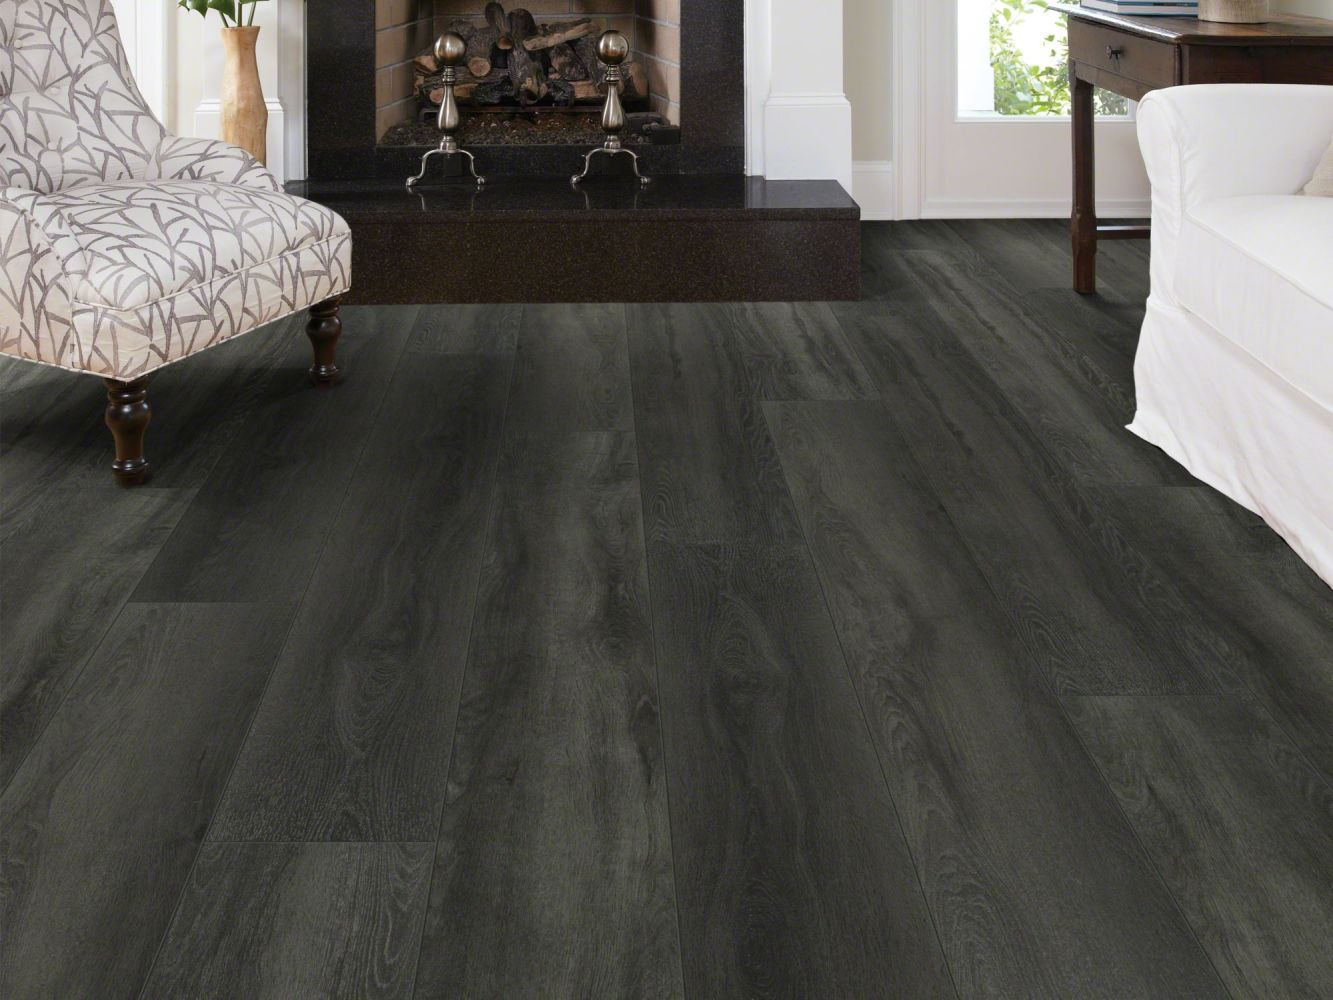 Shaw Floors Vinyl Residential Titan HD Plus Guardian Oak 00907_2002V